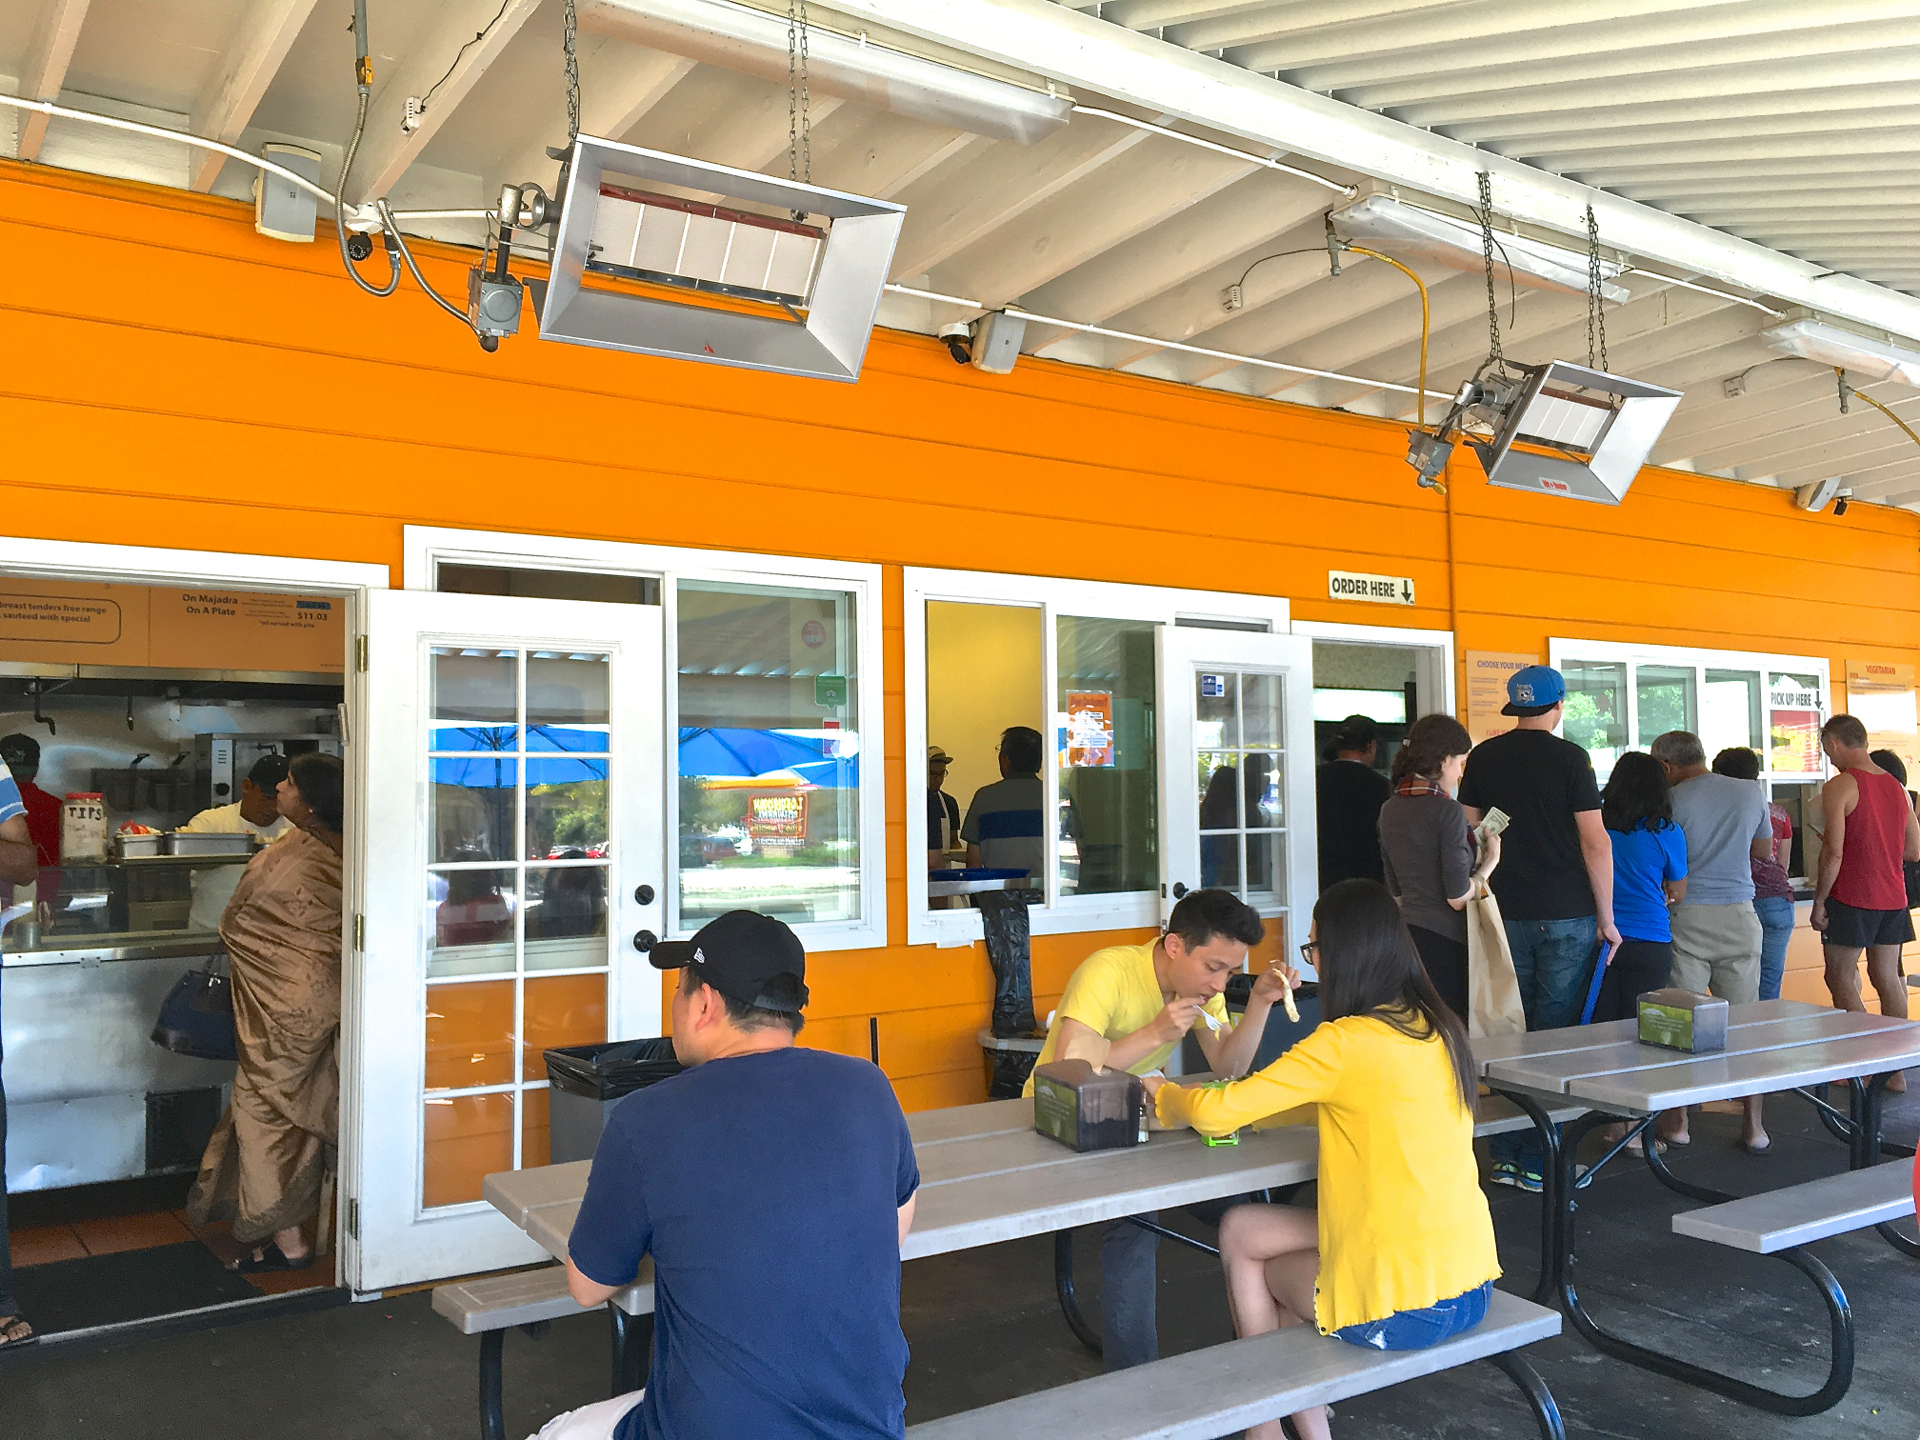 Customers wait on line to pickup their order from the kitchen at Falafel Stop in Sunnyvale.